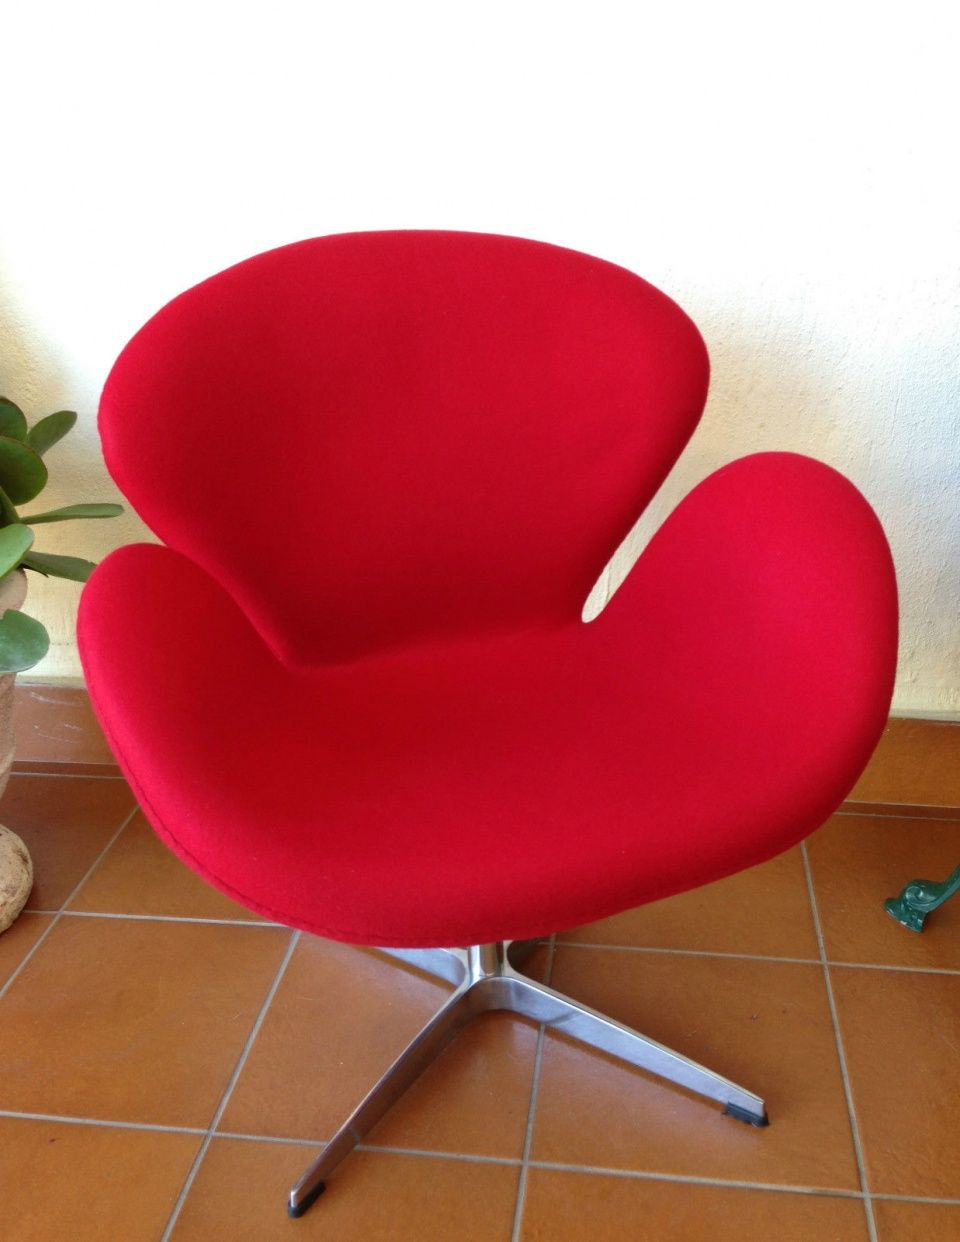 Replica Matt Blatt ARNE JACOBSEN SWAN CHAIR Mid Century Featherstone Vintage Era